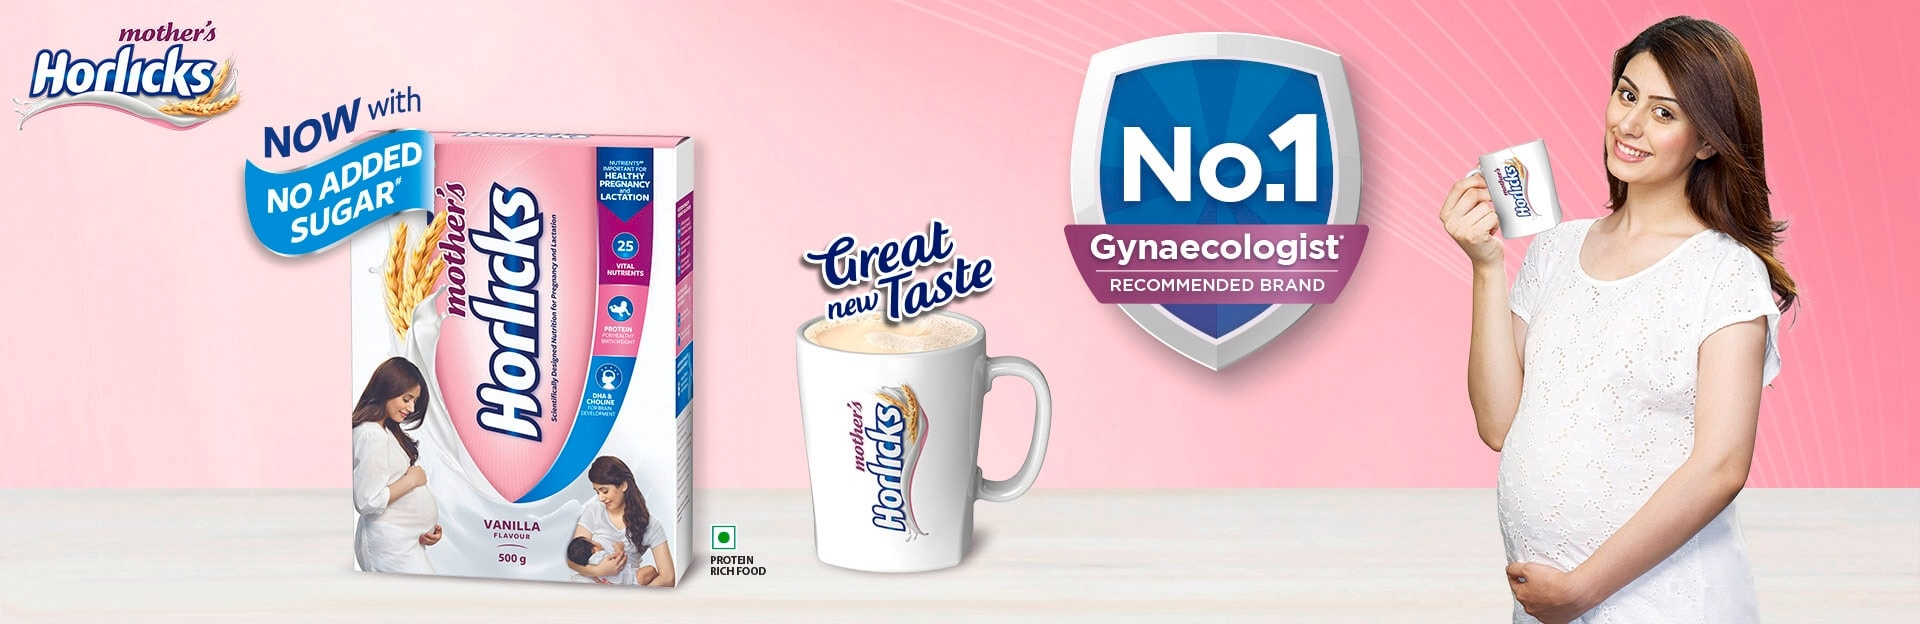 Mothers Horlicks Great New Taste